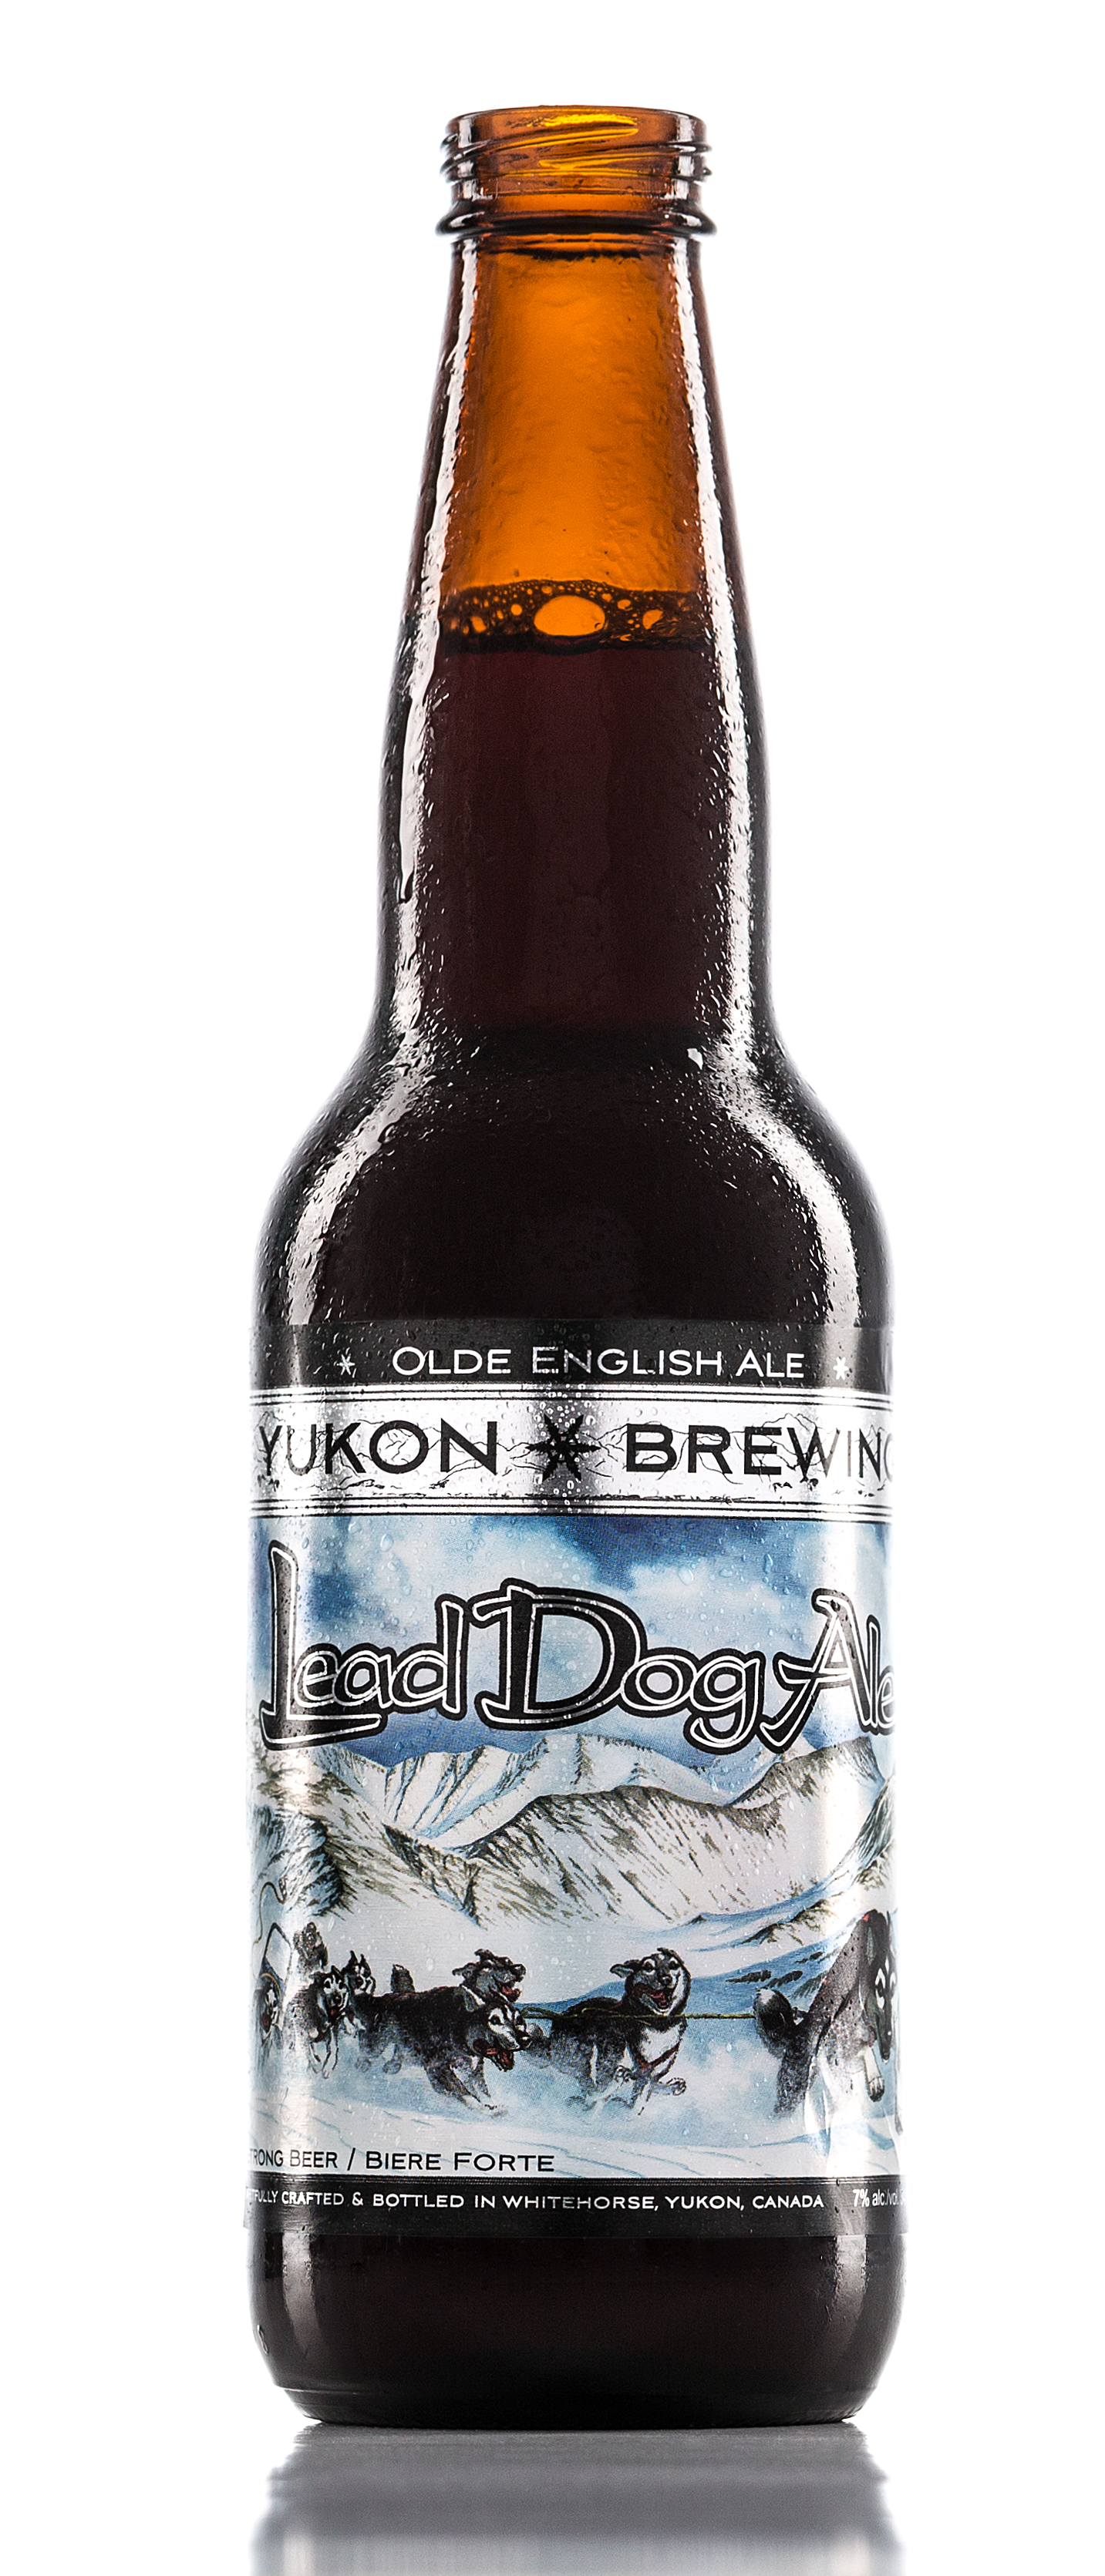 20140506_Yukon_Brewing_Products_GBP_016